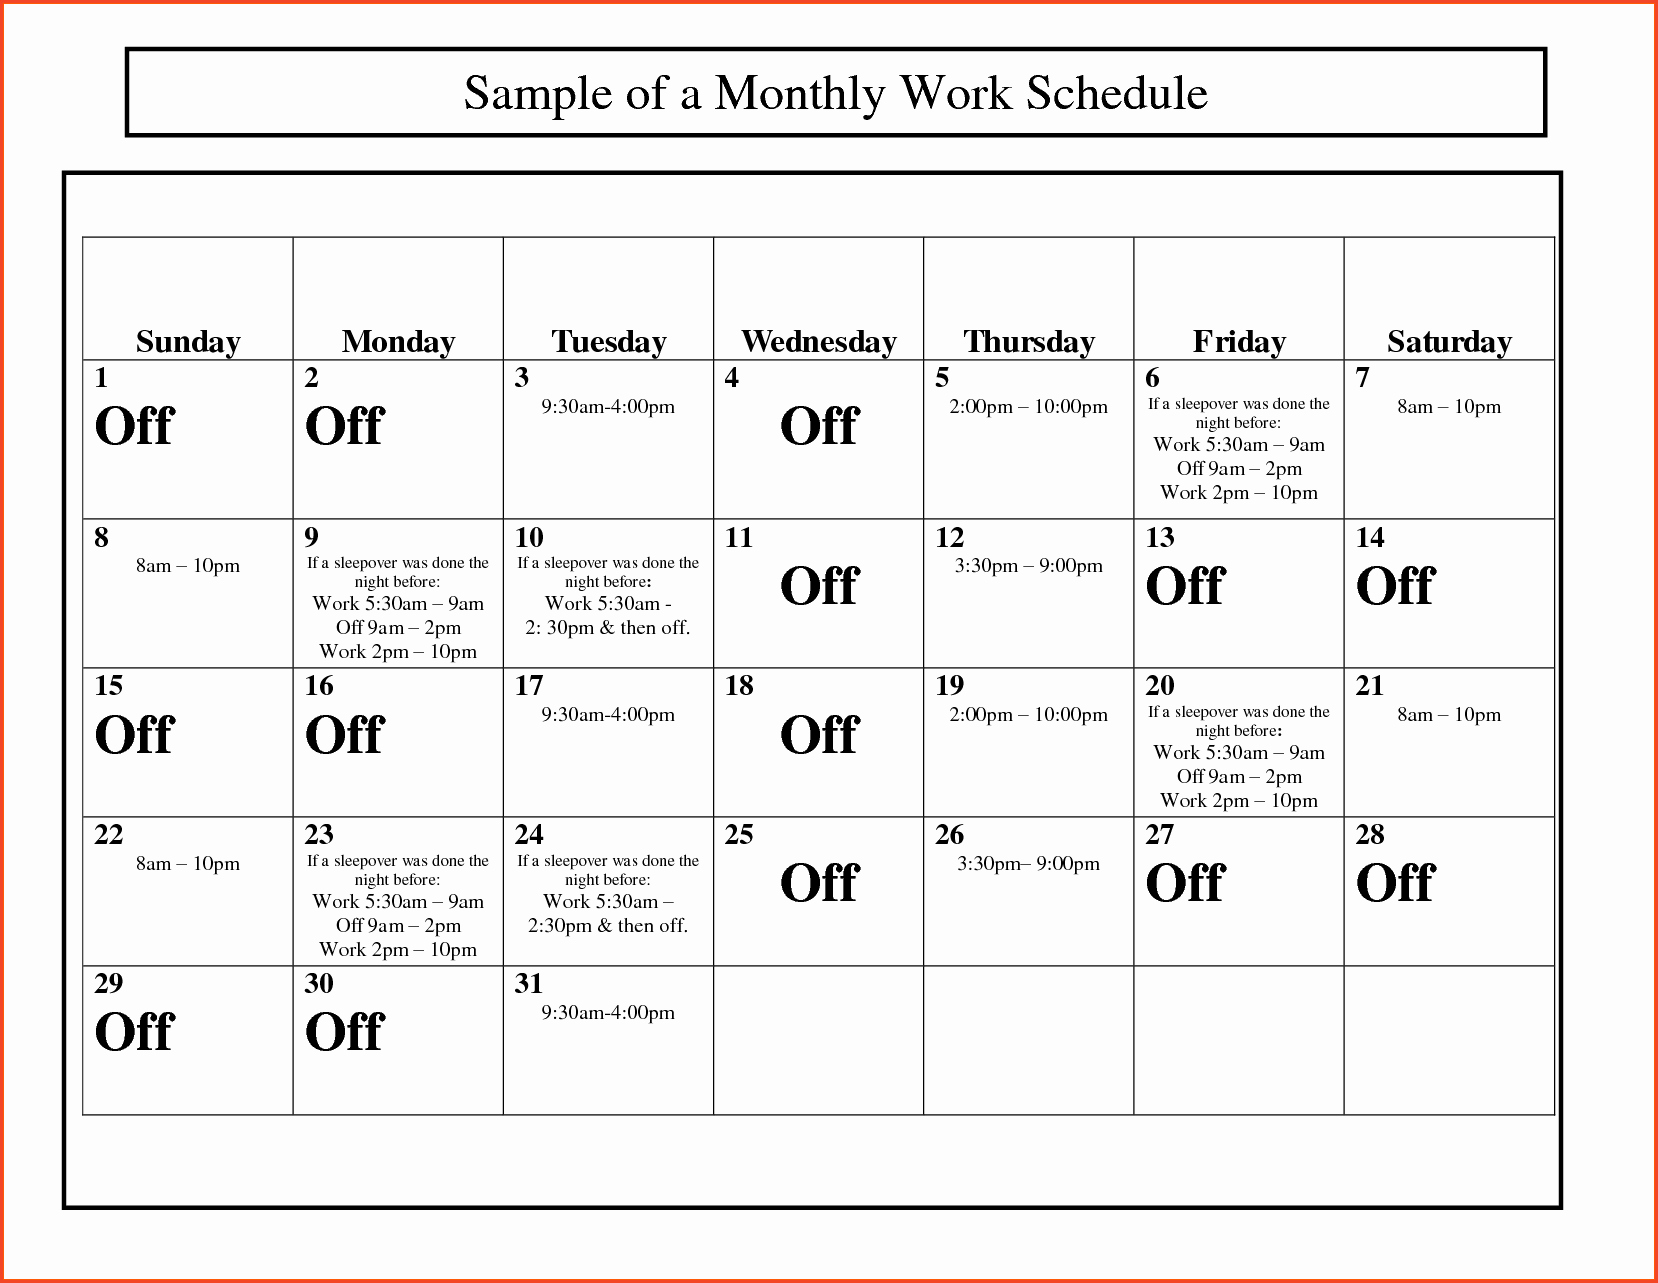 Monthly Work Schedule Template Excel Awesome Monthly Work Schedule Template